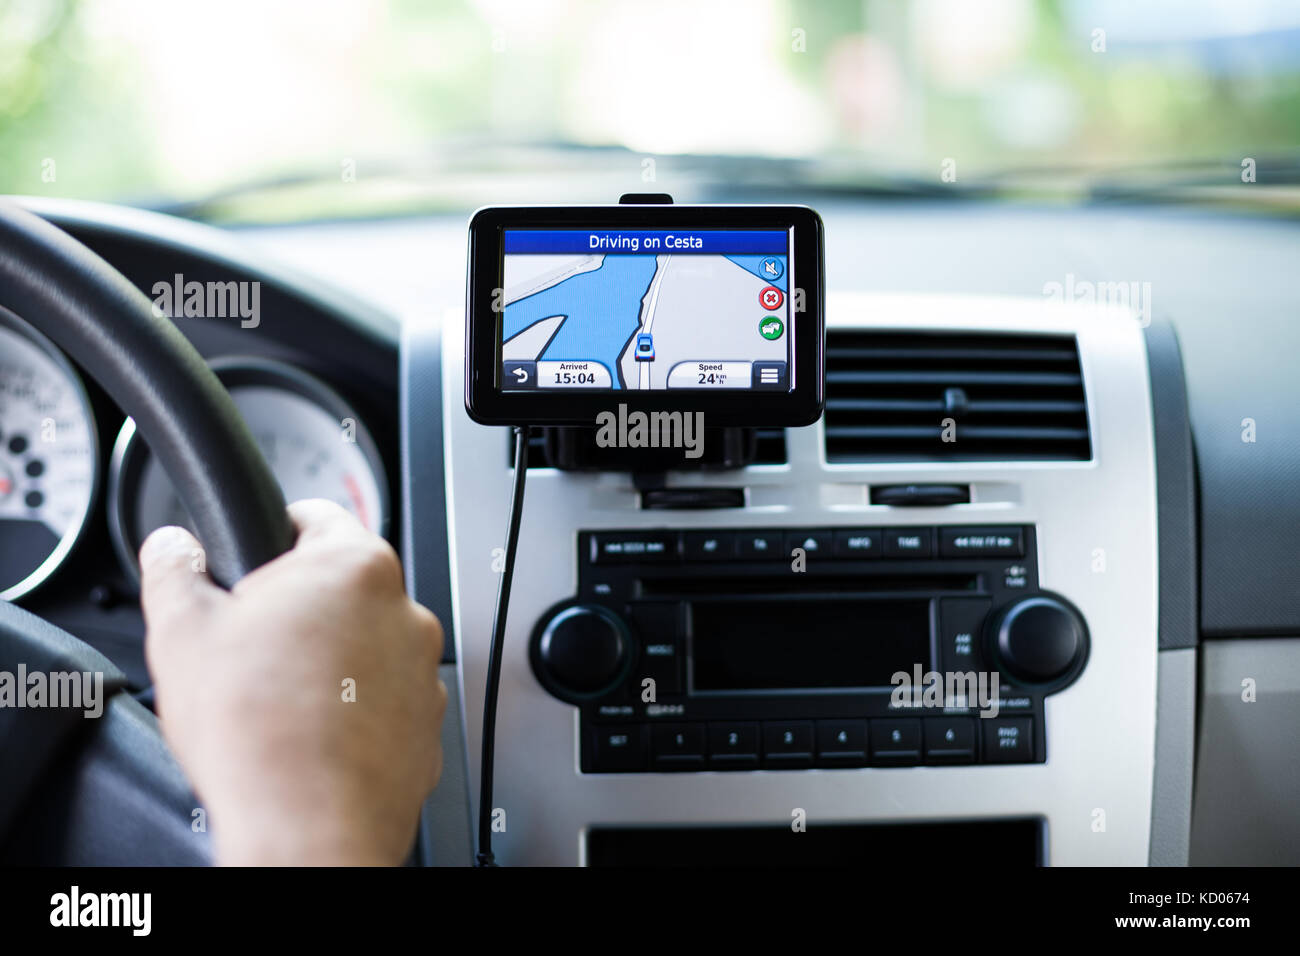 GPS navigation in interior of luxury car - Stock Image